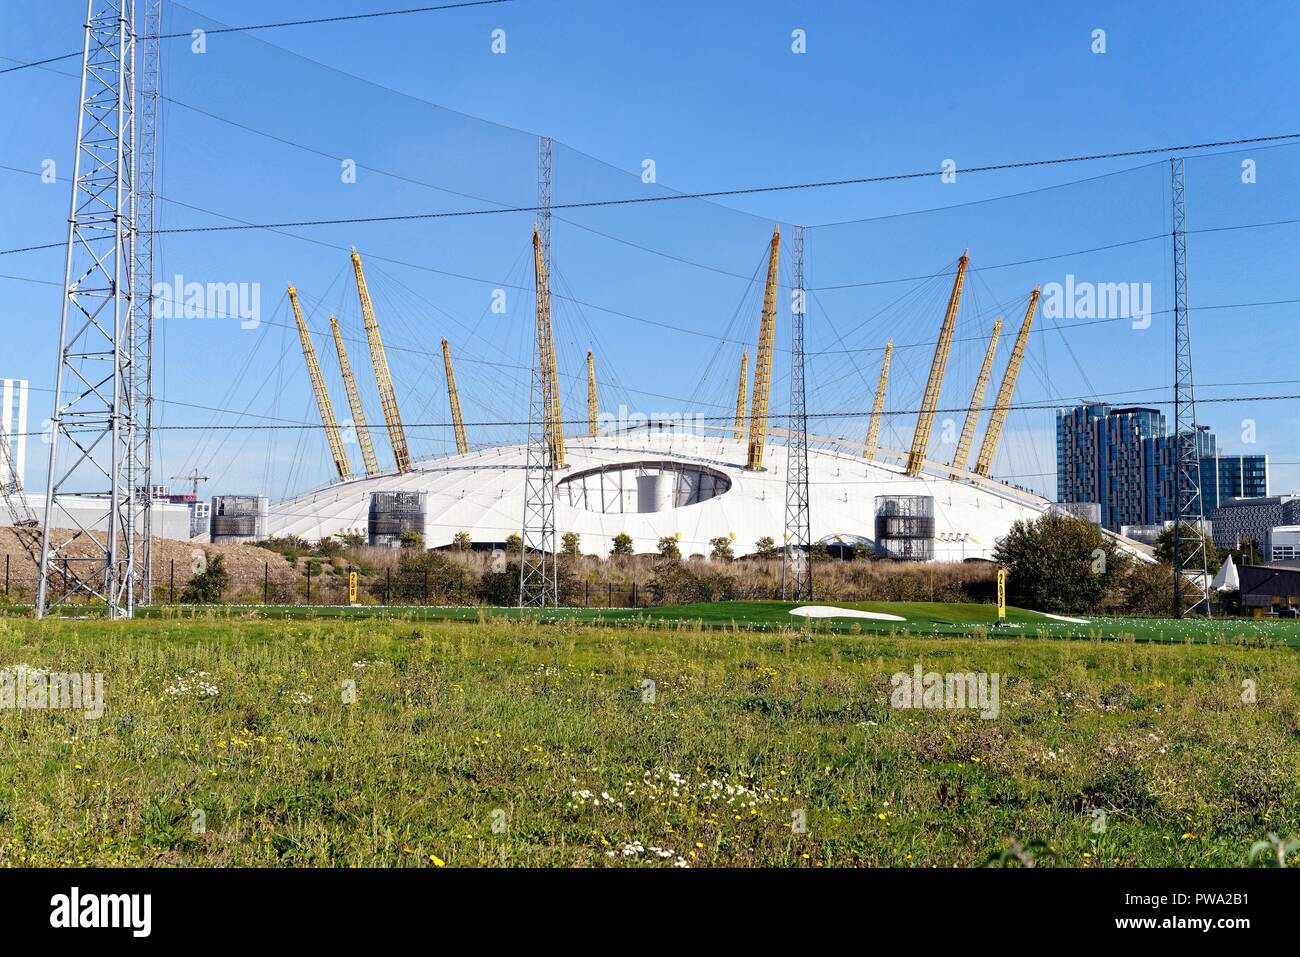 The O2 dome with a golf driving range and large safety netting in the foreground ,Greenwich Peninsula London England UK - Stock Image